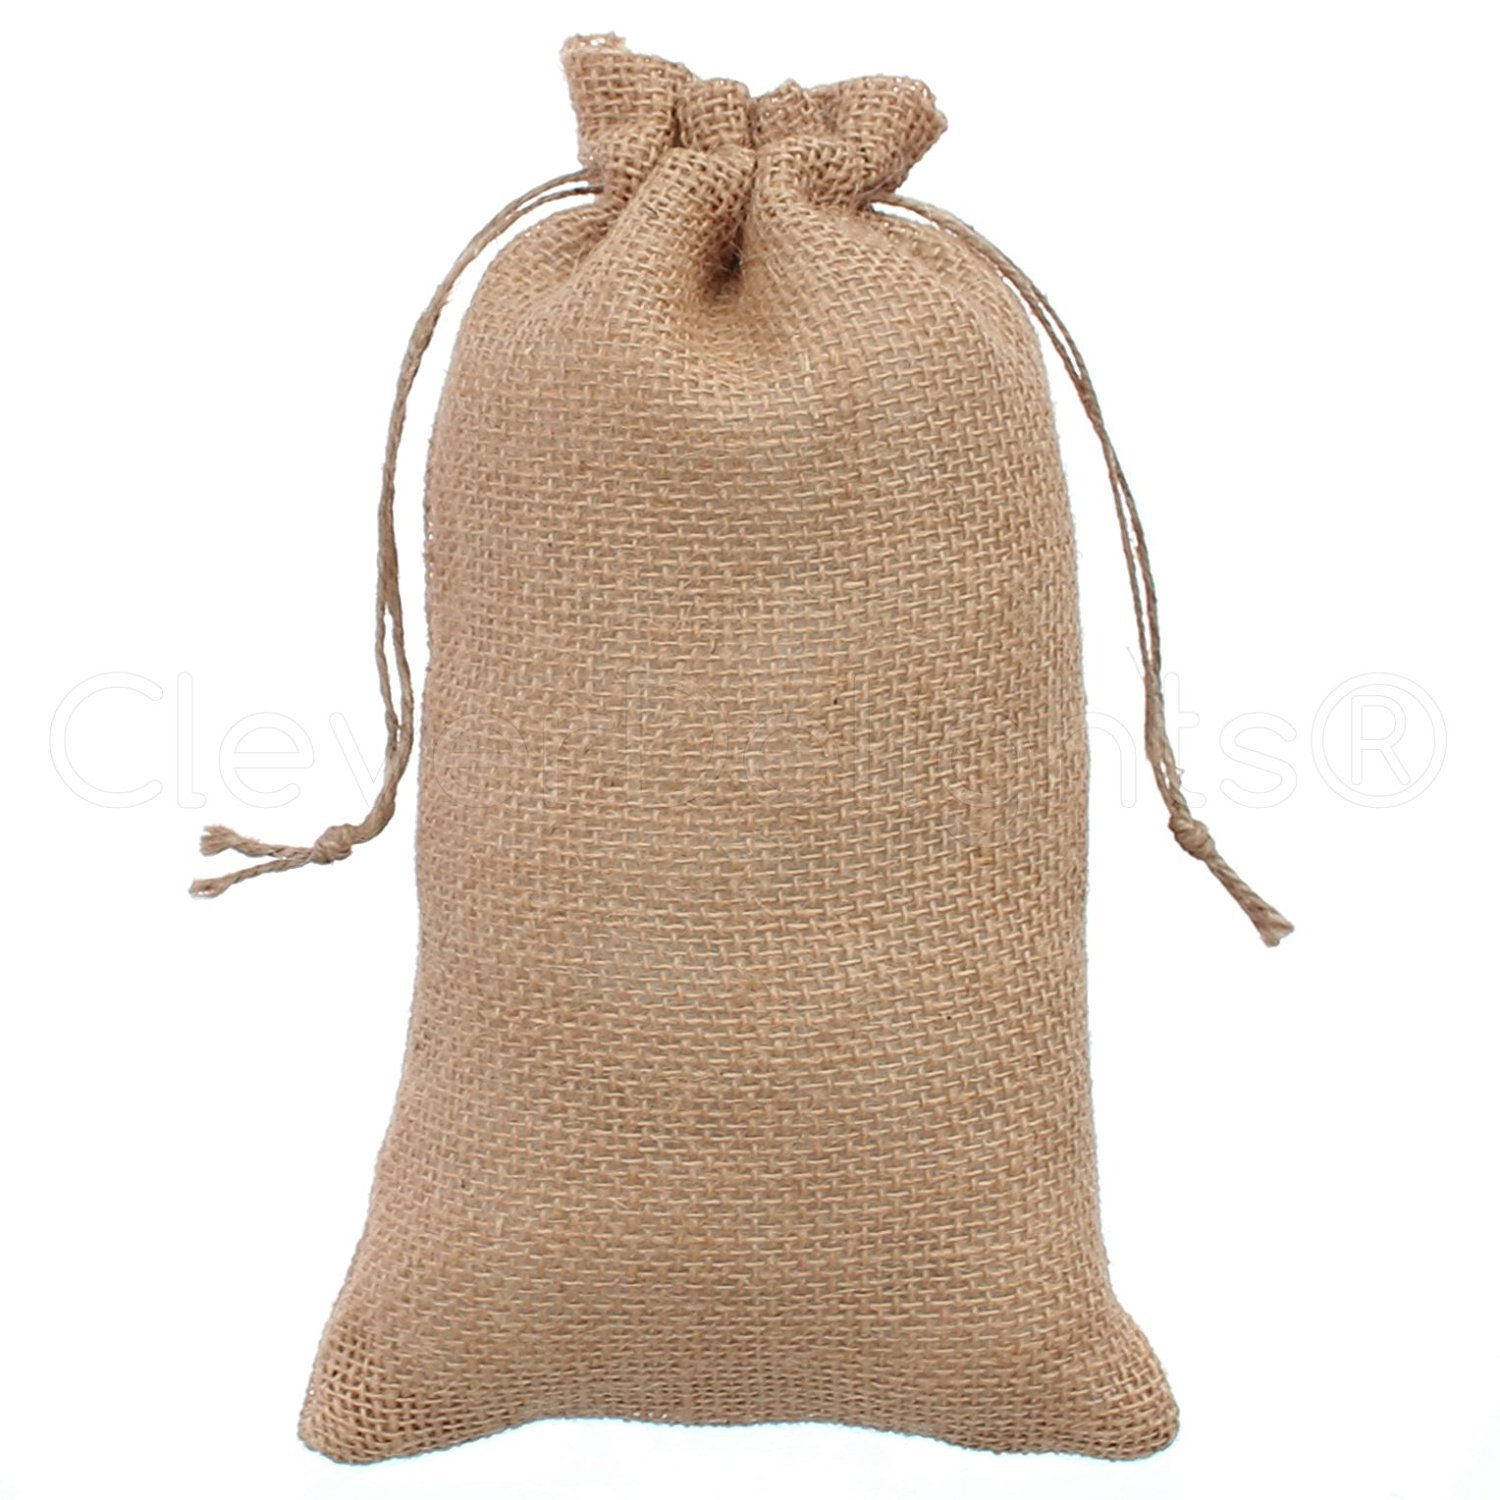 """CleverDelights 6"""" x 10"""" Burlap Bags with Natural Jute Drawstring - 100 Pack"""